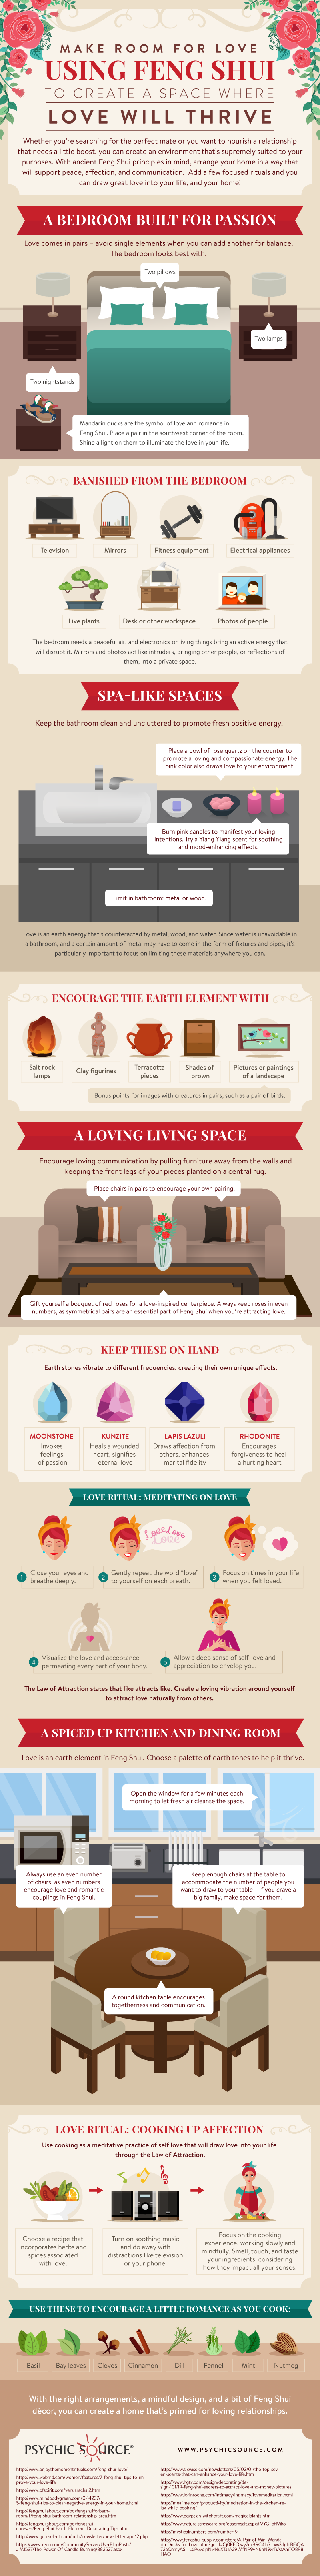 Feng Shui Tips for Love